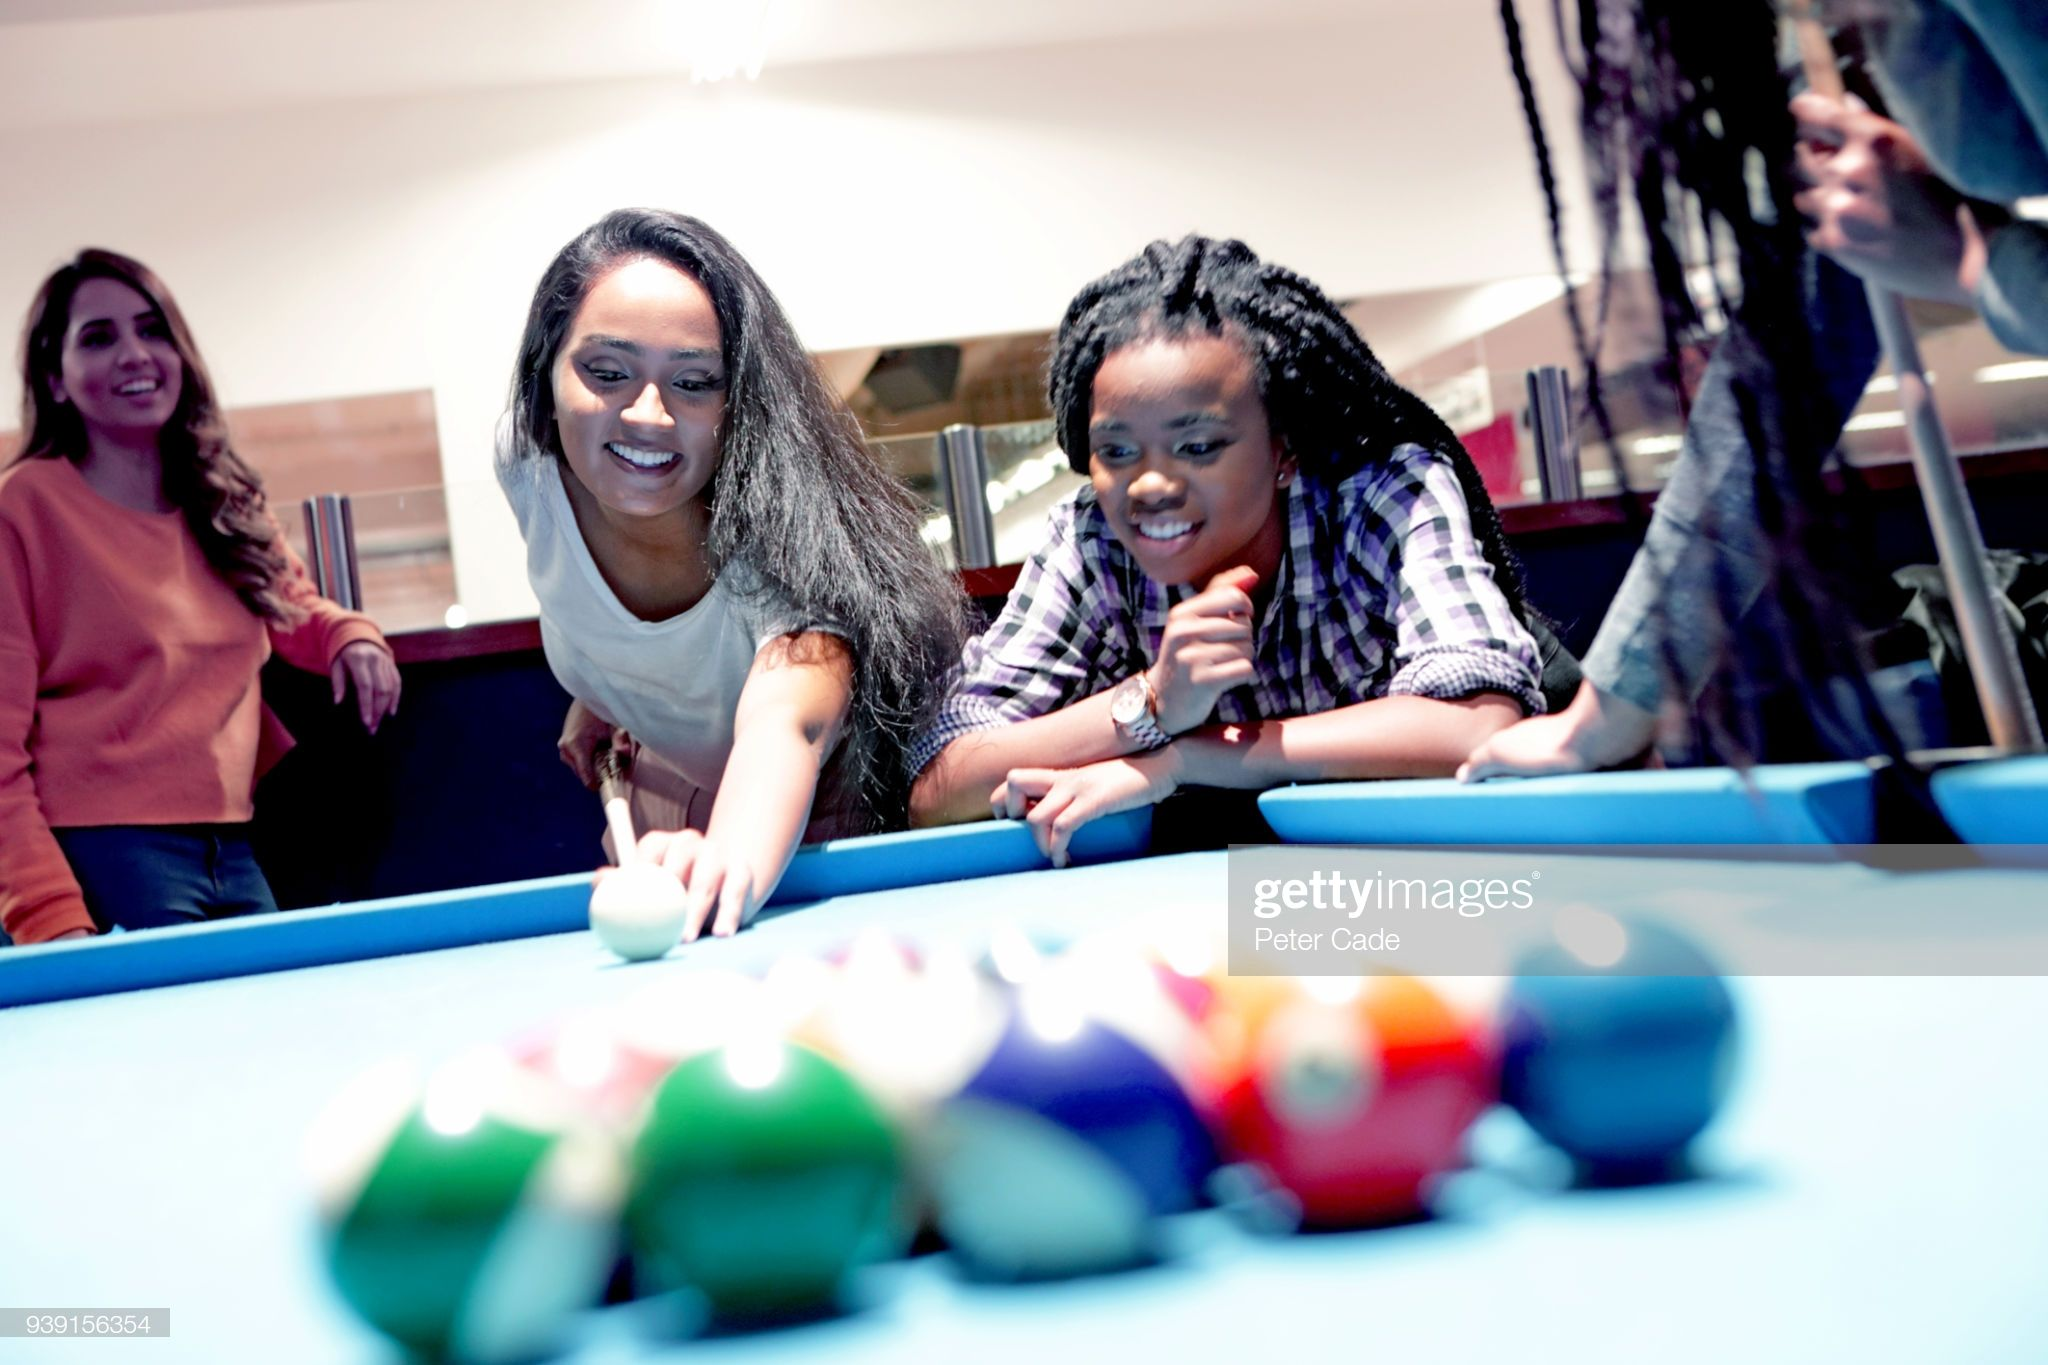 Stock Photo Group of girls playing pool Stock photos